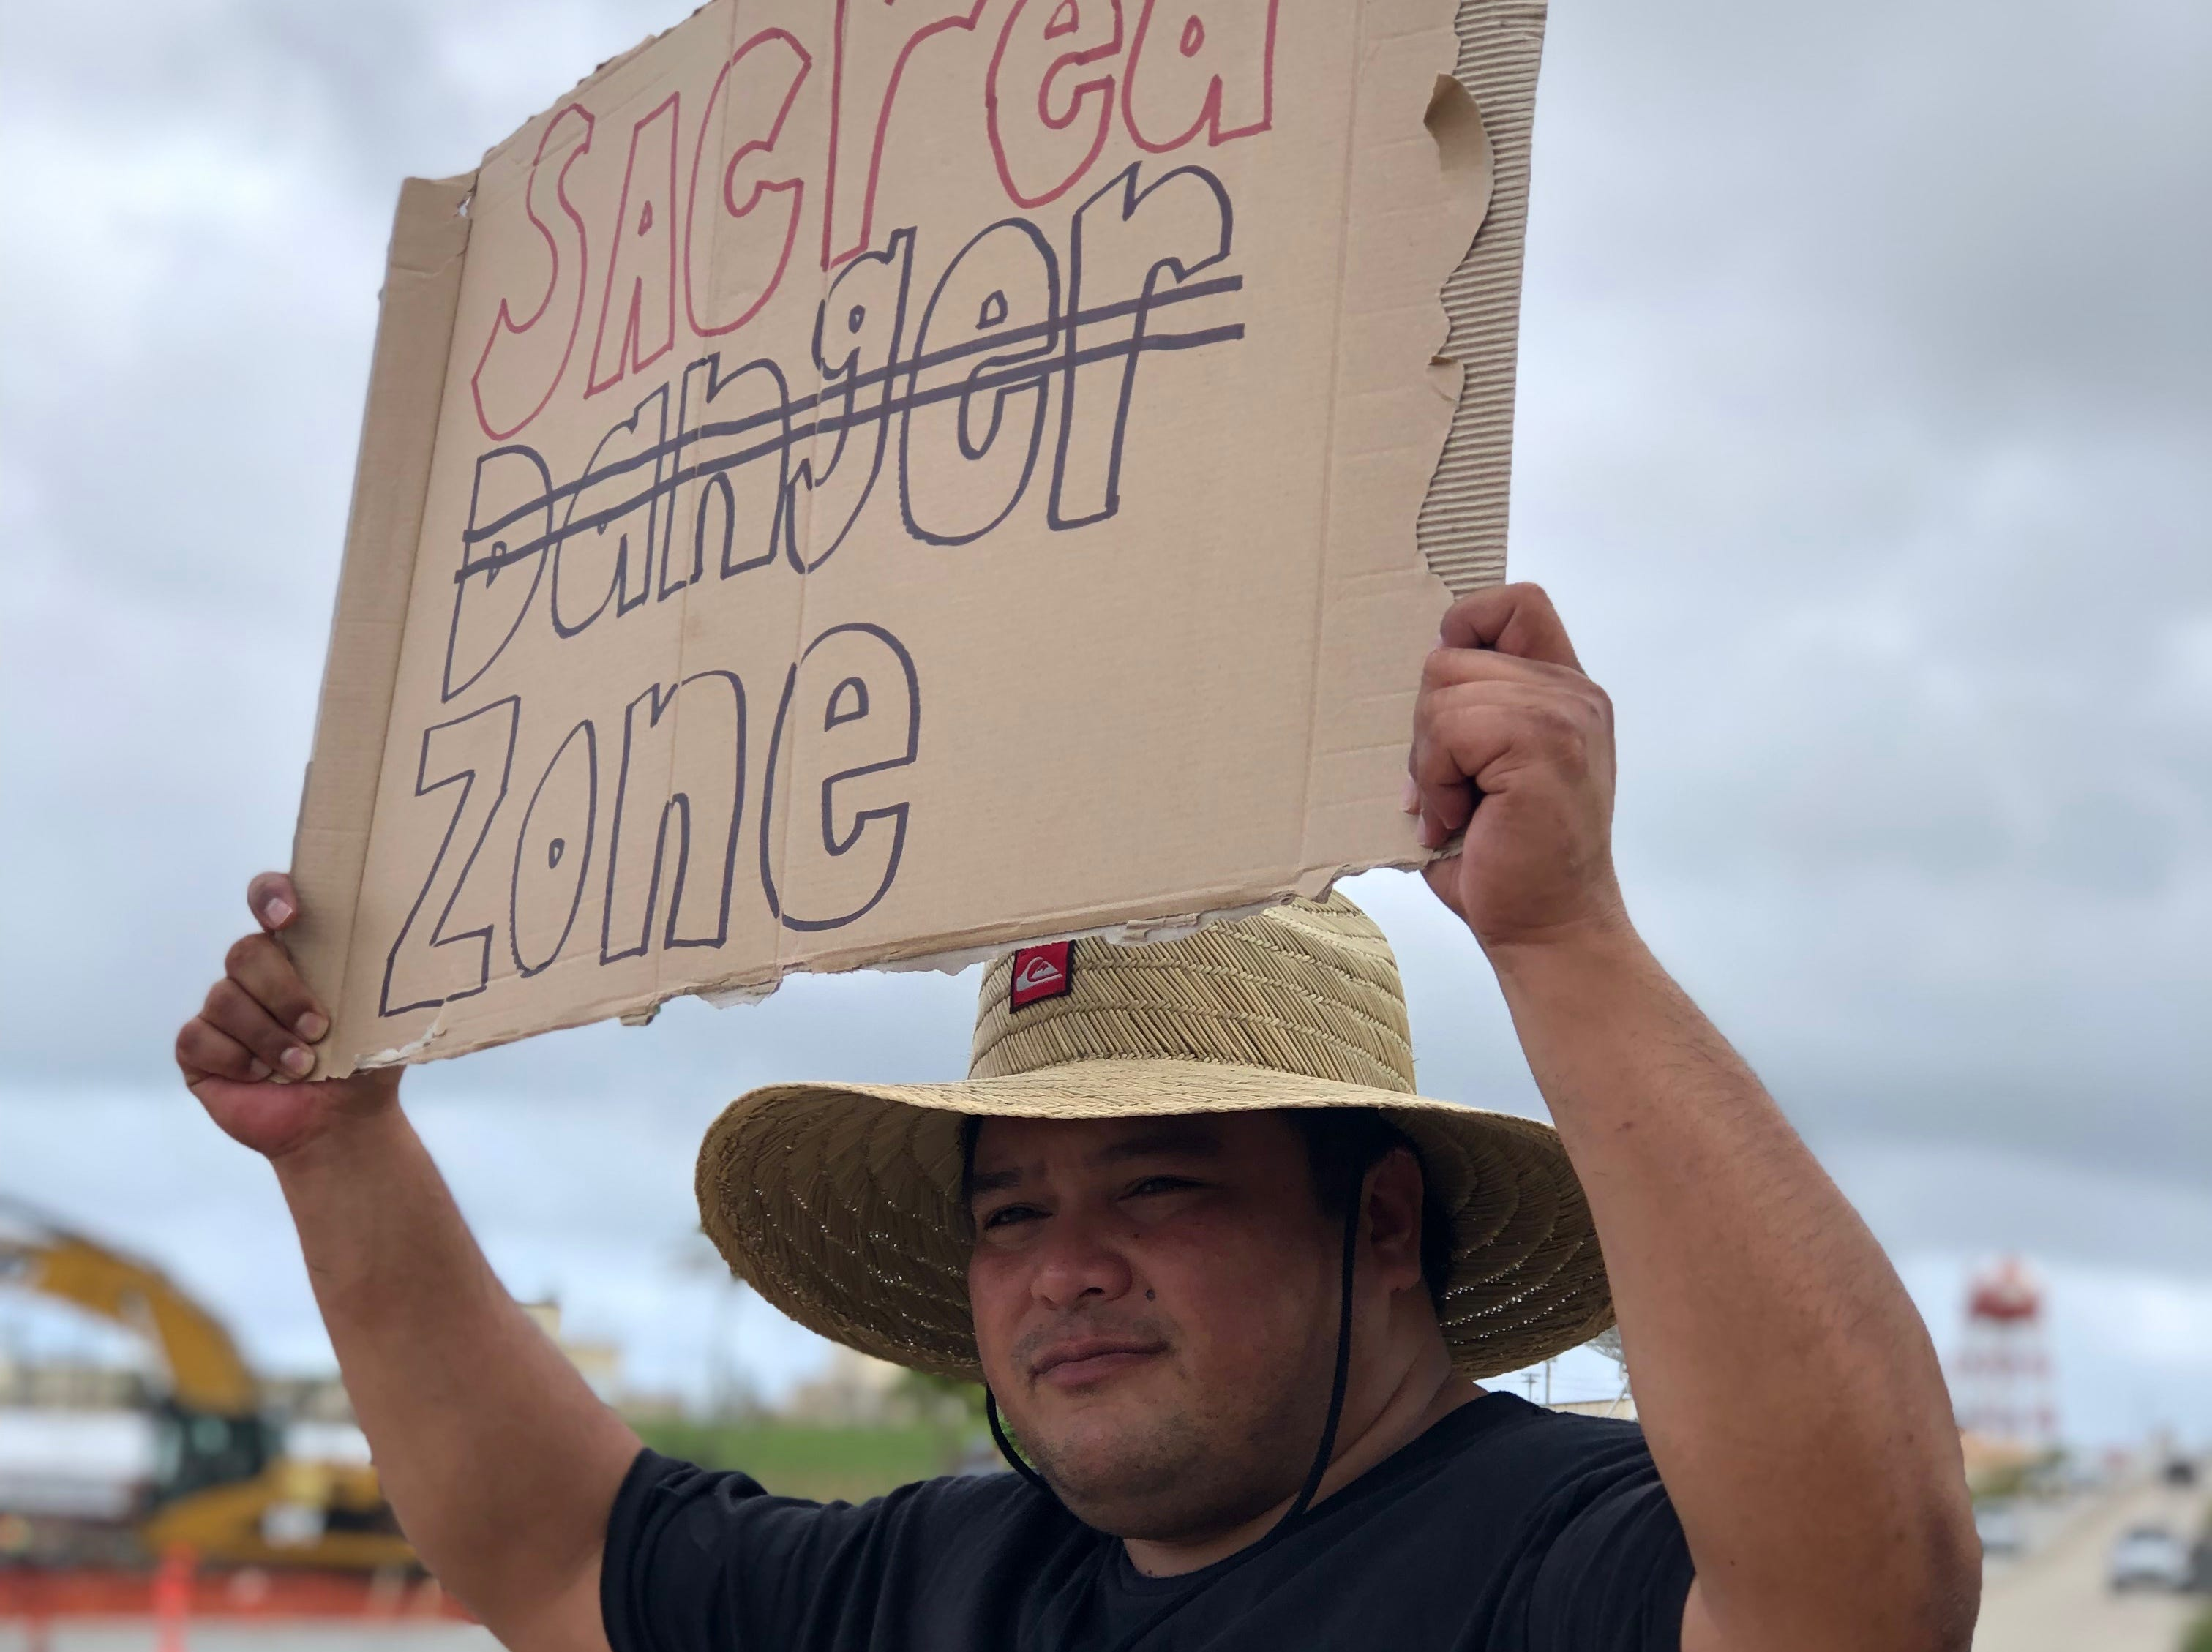 Jesse Chargualaf holds up a sign peacefully protesting against the proposed surface danger zone at Finegayan. Groups of people protested along Route 3 and in boats near the proposed zone on Saturday, Feb. 9, 2019.